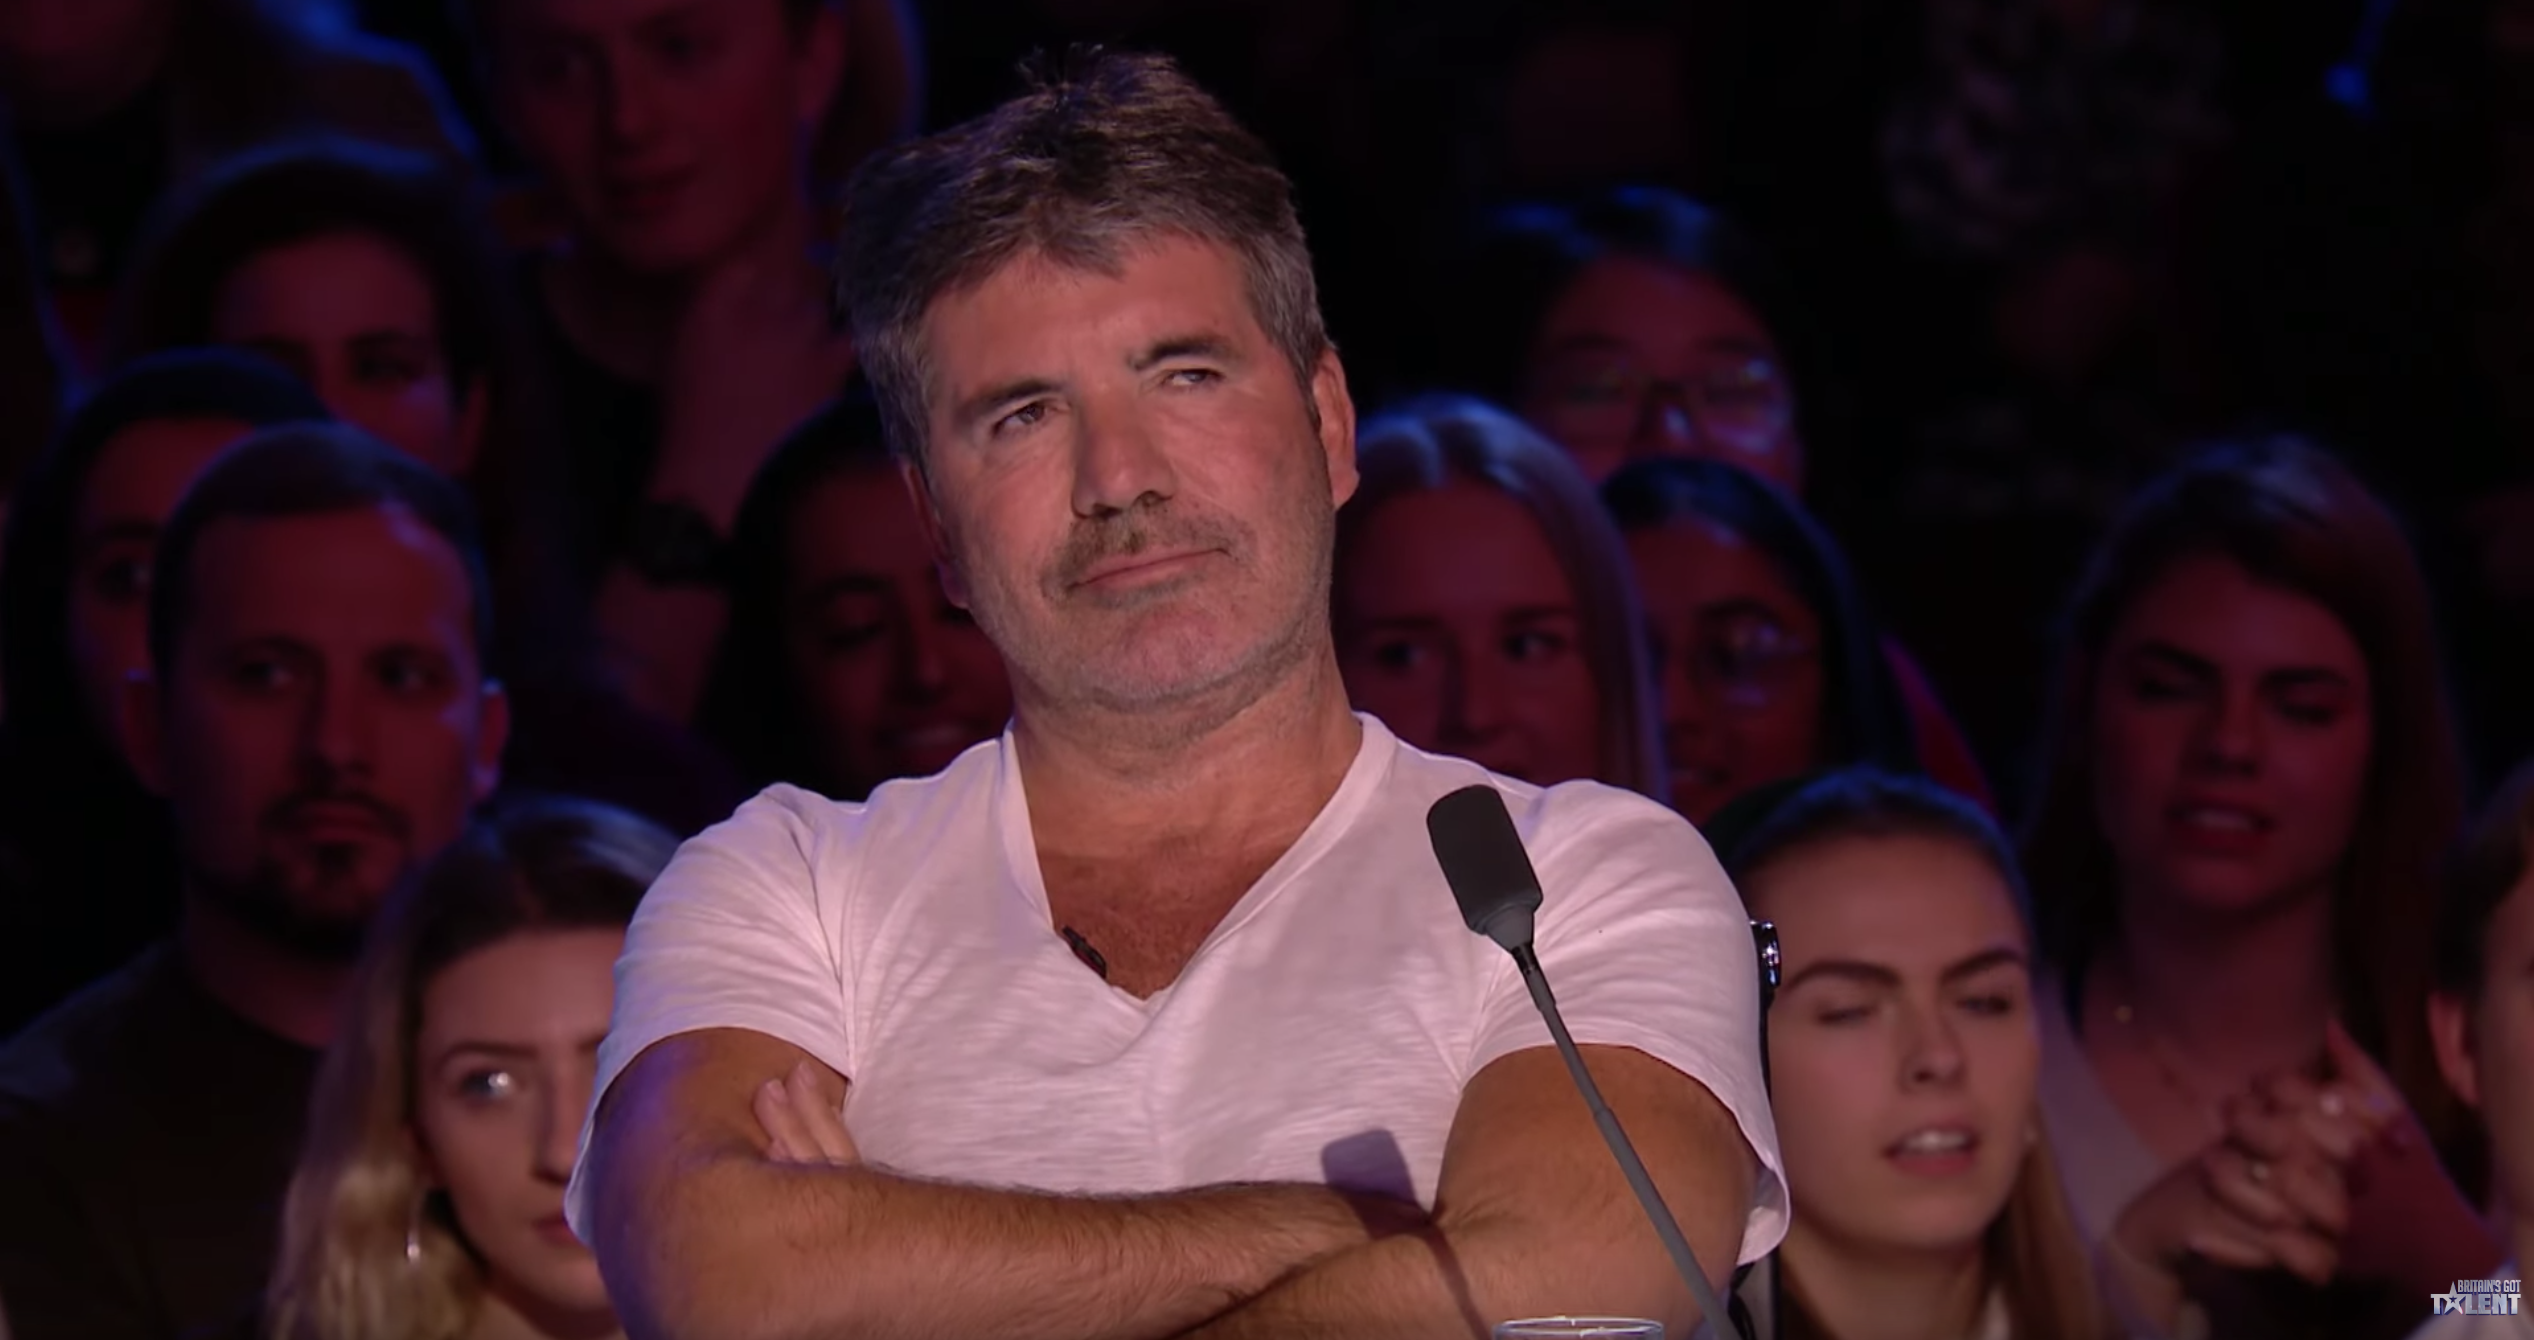 Simon Cowell was once FIVE HOURS late to a BGT recording and blamed David Walliams